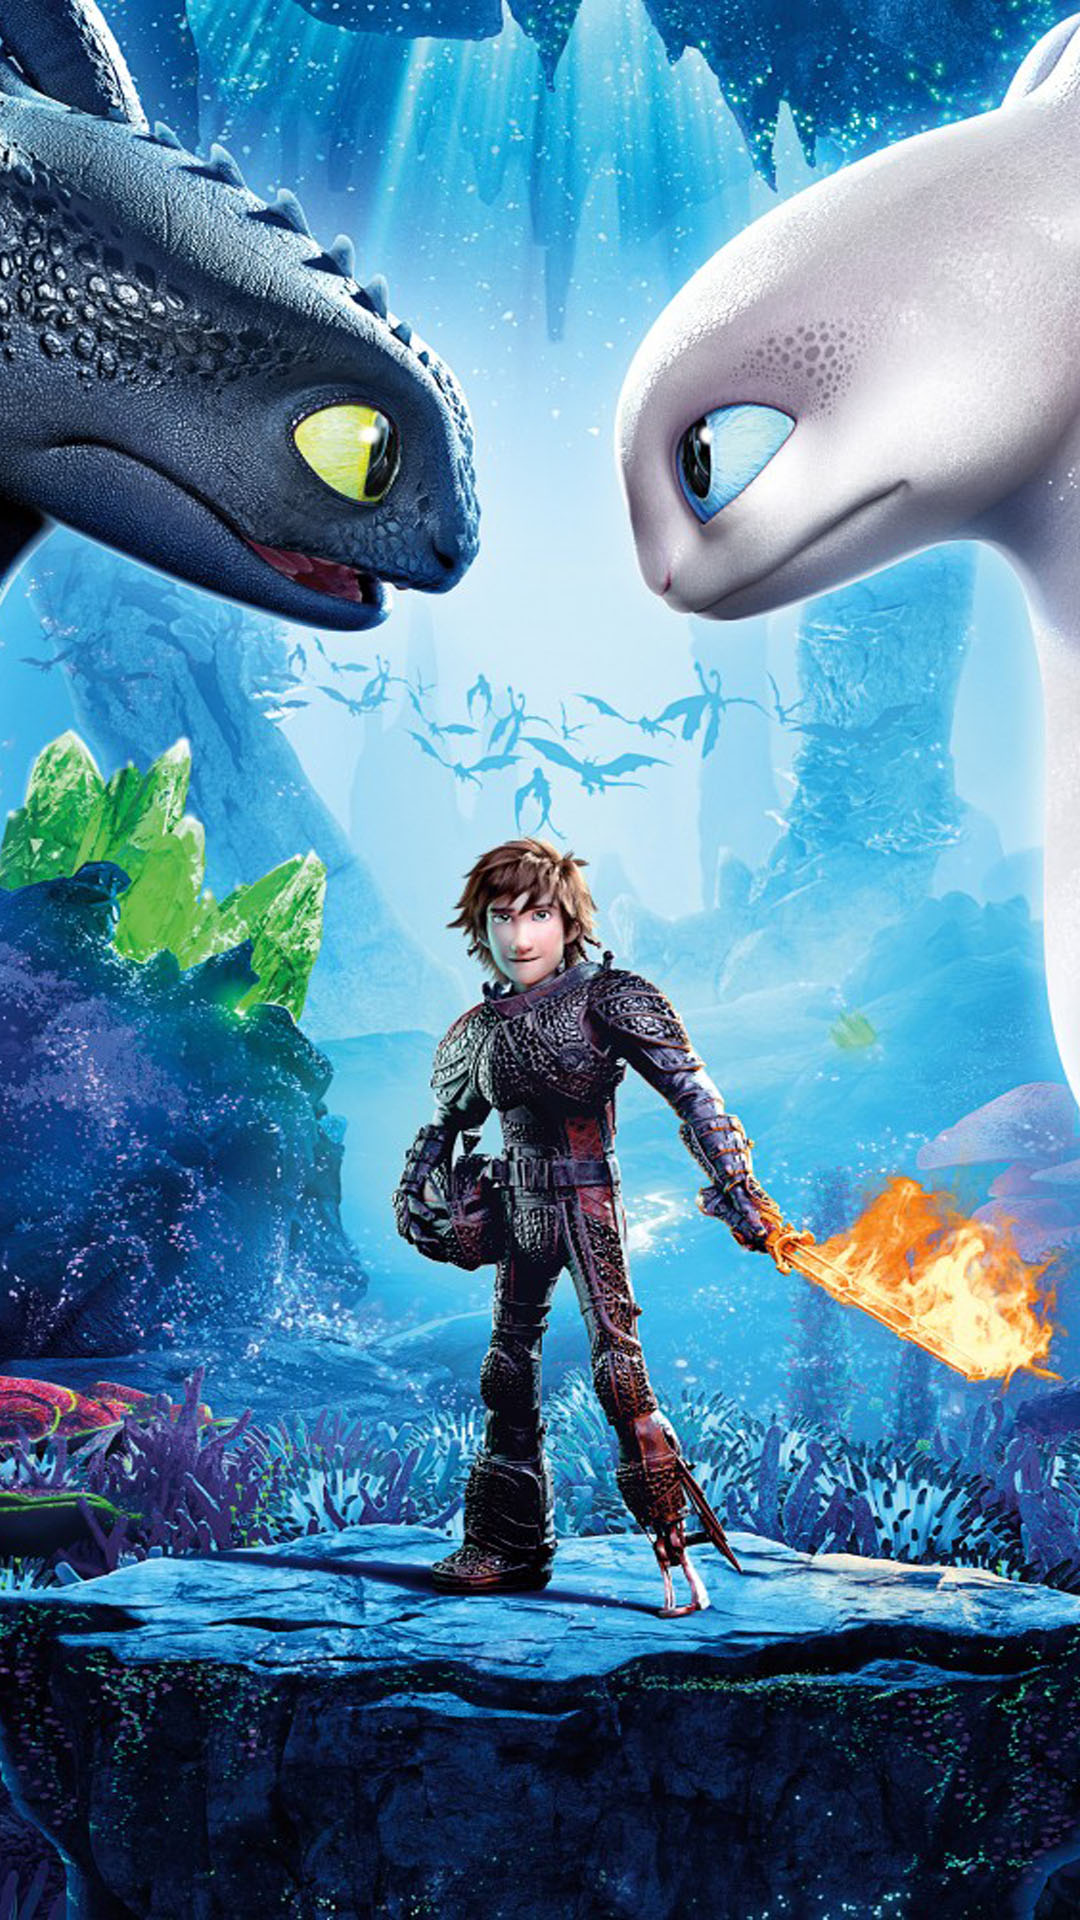 Download how to train your dragon the hidden world free - How to train your dragon hd download ...